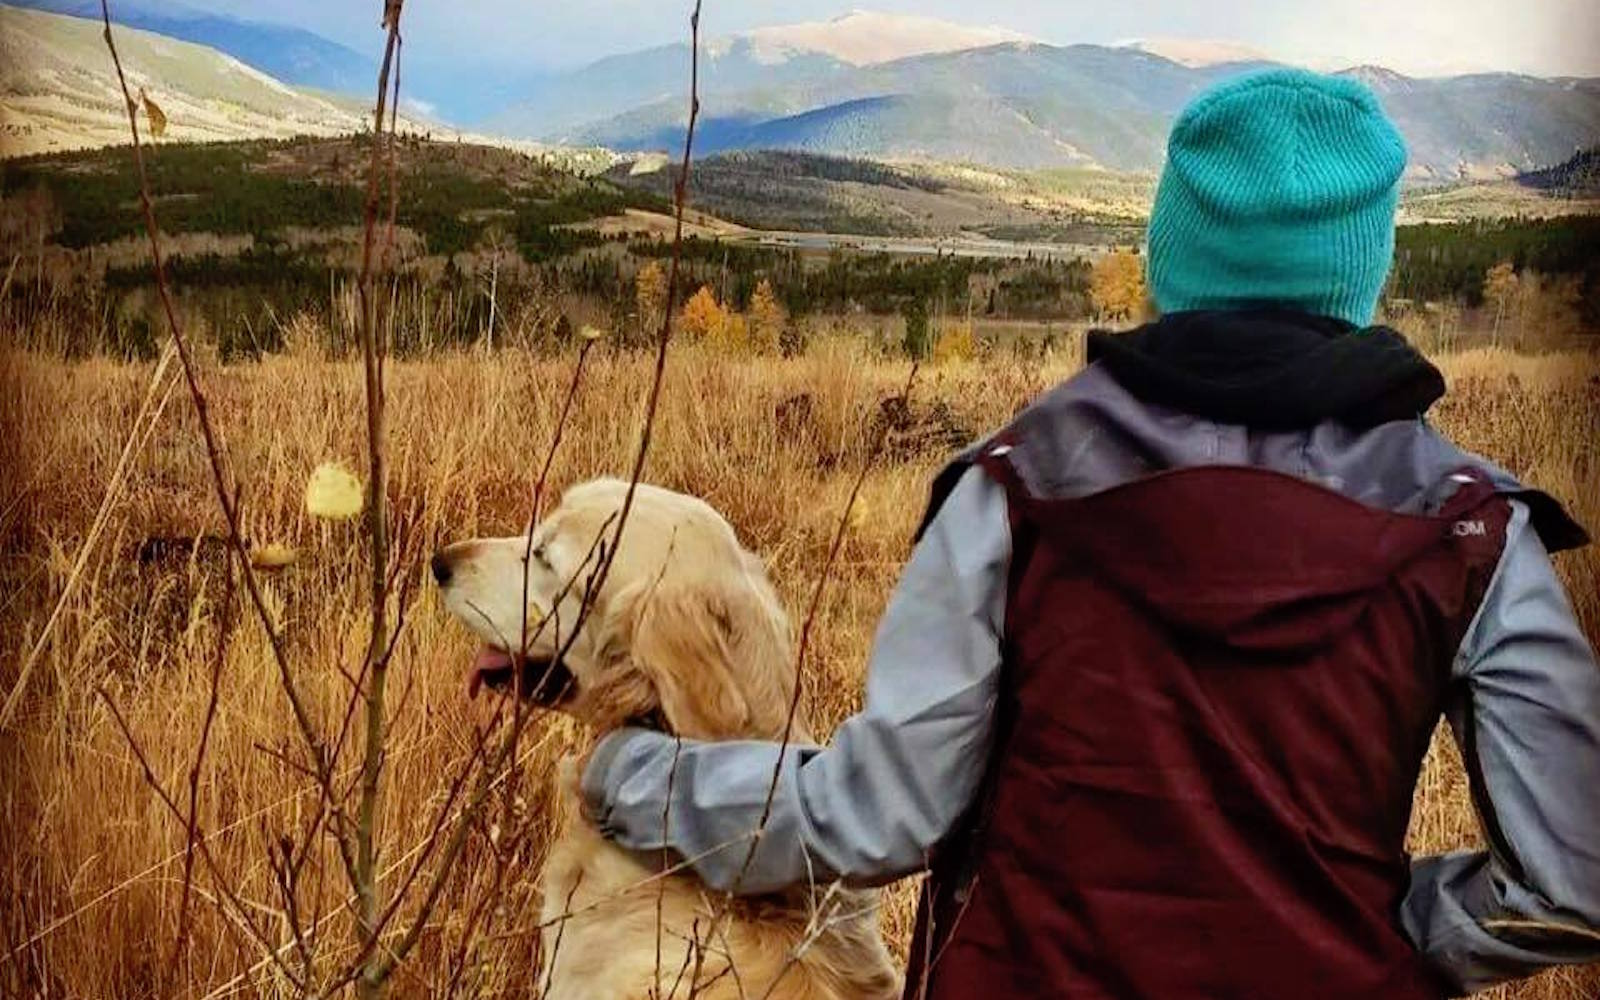 Kathleen Considine takes in a nature scene with her golden retriever, Jacob